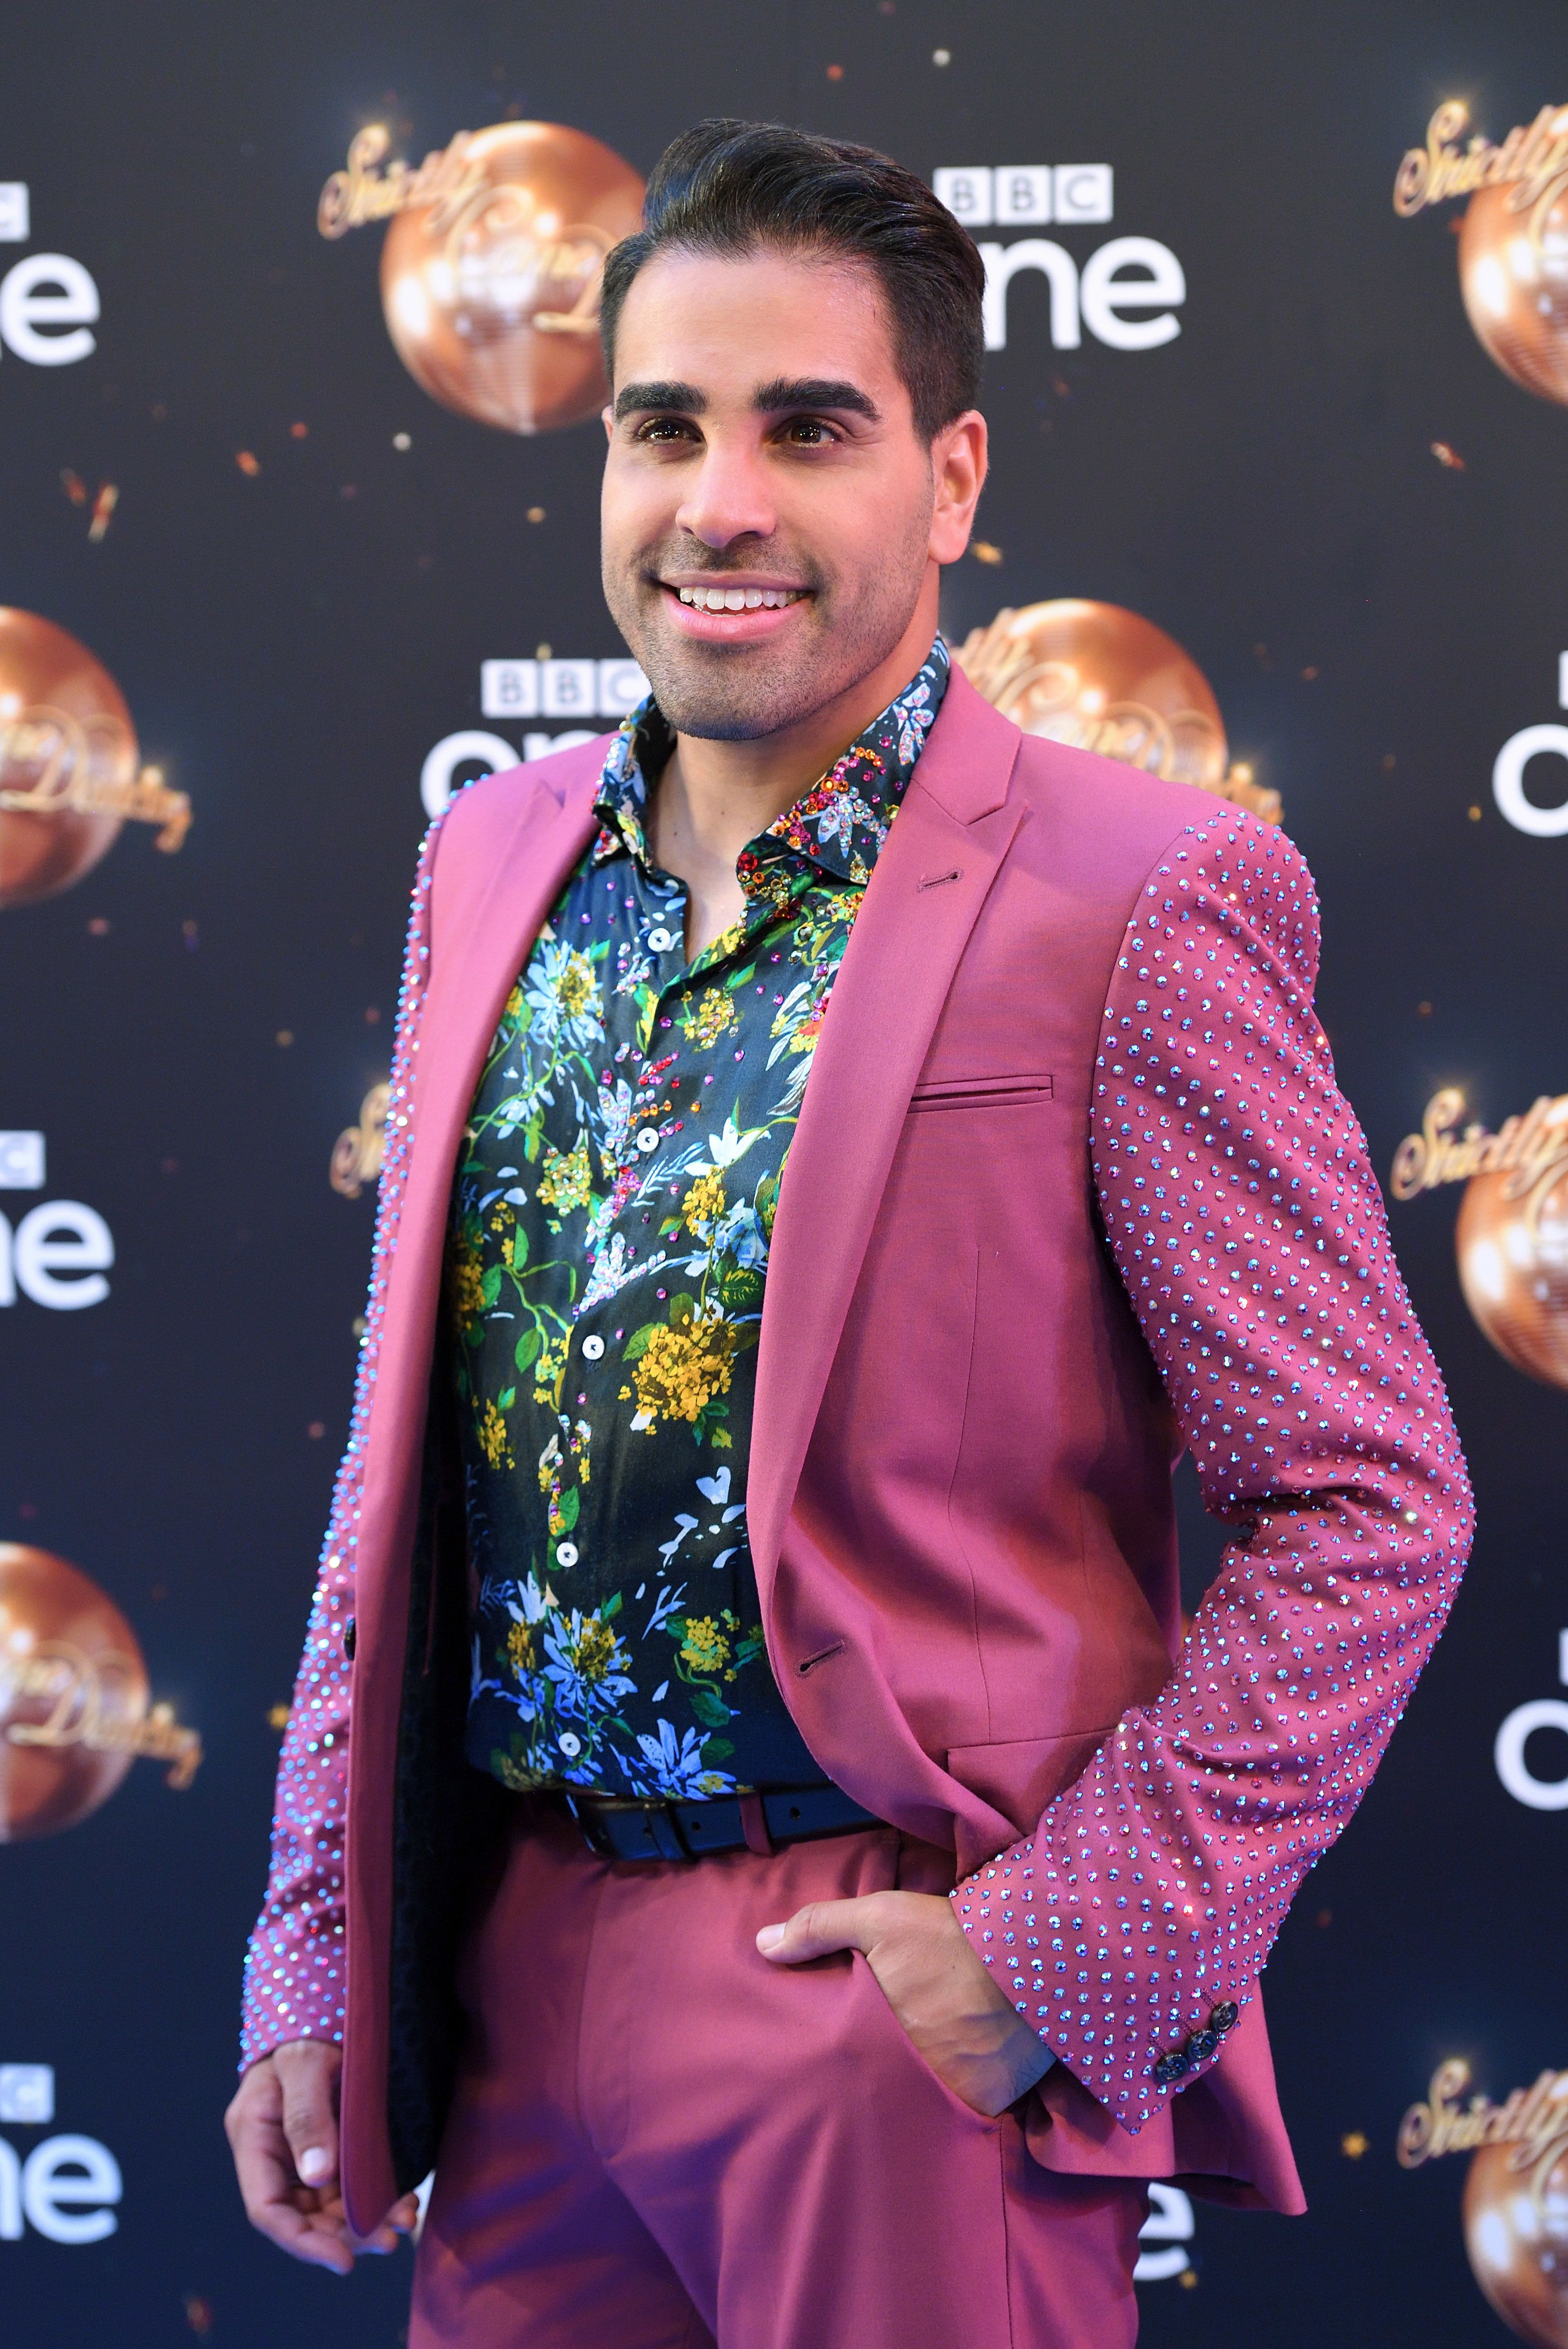 Dr Ranj Applauds Range Of Diversity Among New 'Strictly Come Dancing'